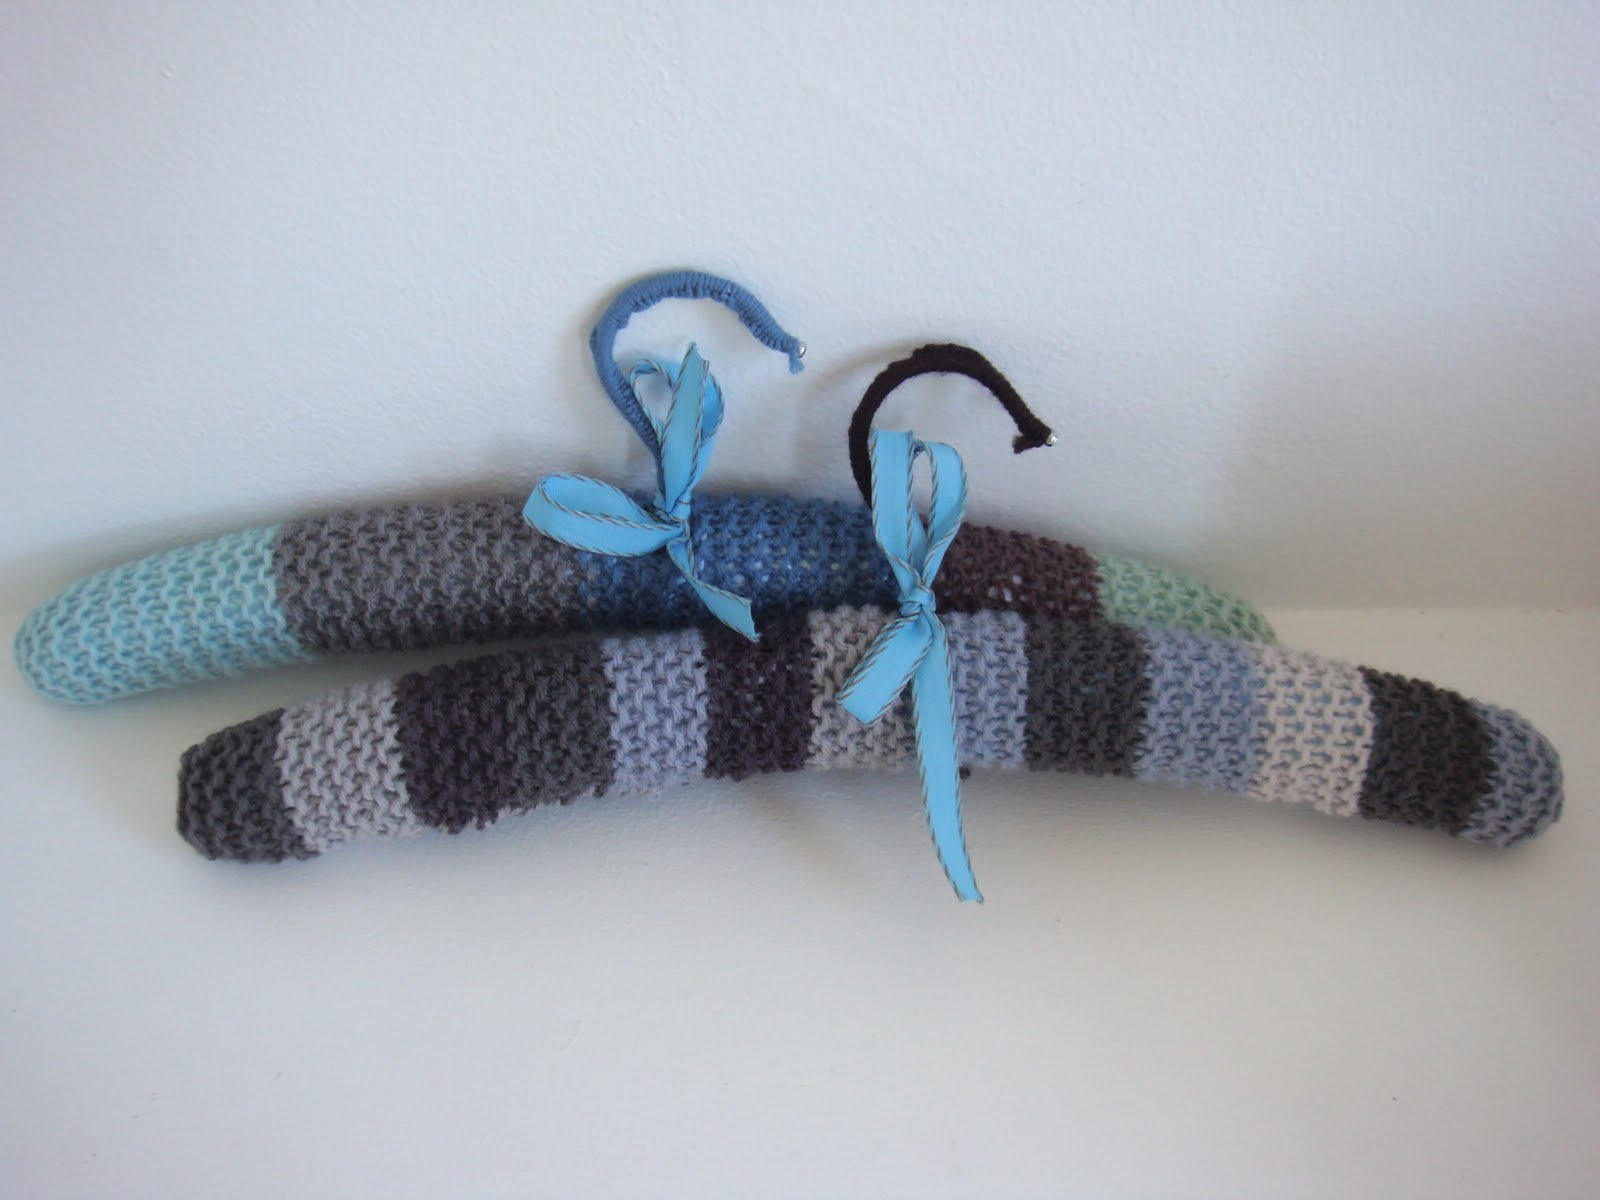 Crocheting On A Hanger : Crochet hangers on Pinterest Hangers, Coat Hanger and Crochet